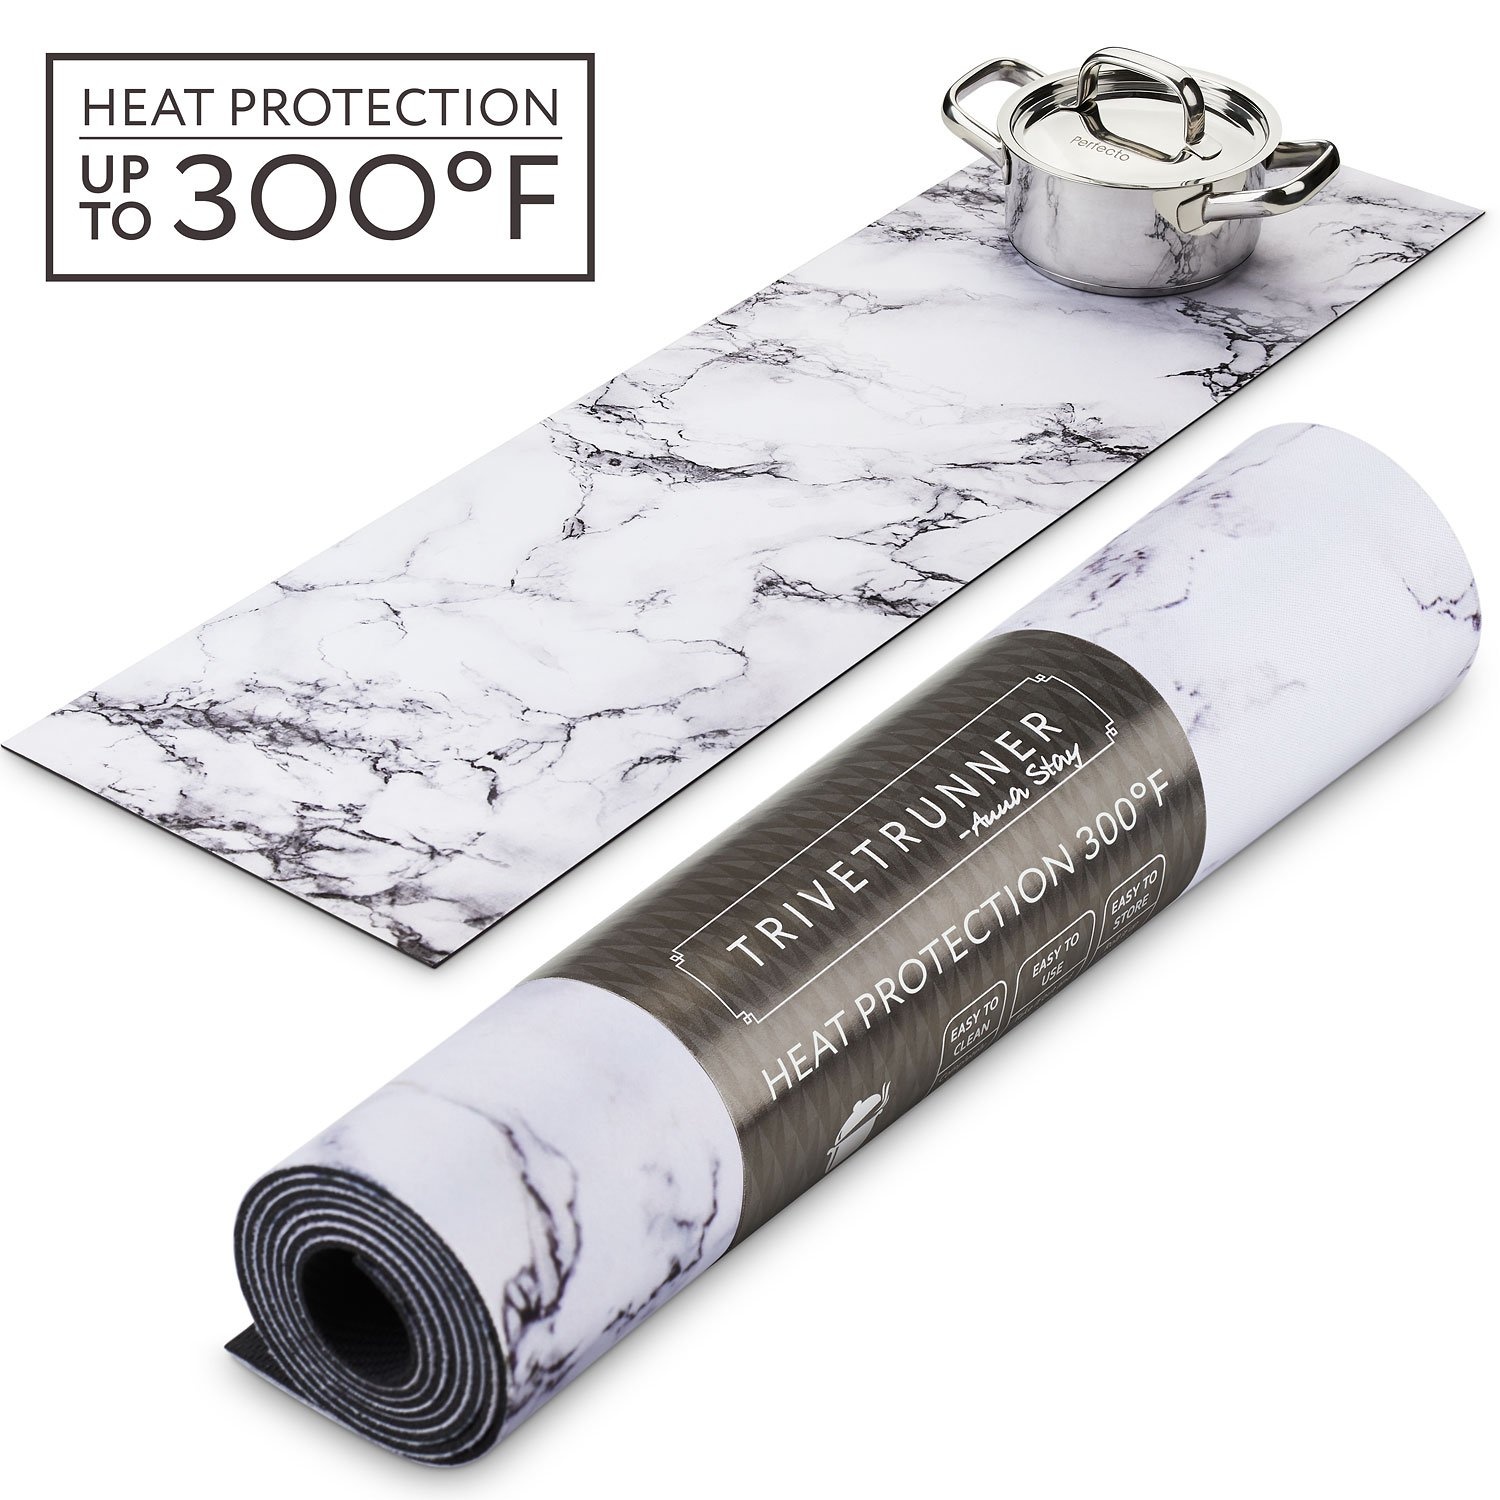 TRIVETRUNNER Decorative Trivet and Kitchen Table Runners Handles Heat Up to 300F, Anti Slip, Hand Washable, and Convenient for Hot Dishes and Pots,Hand Washable (White Marble) by TRIVETRUNNER (Image #1)